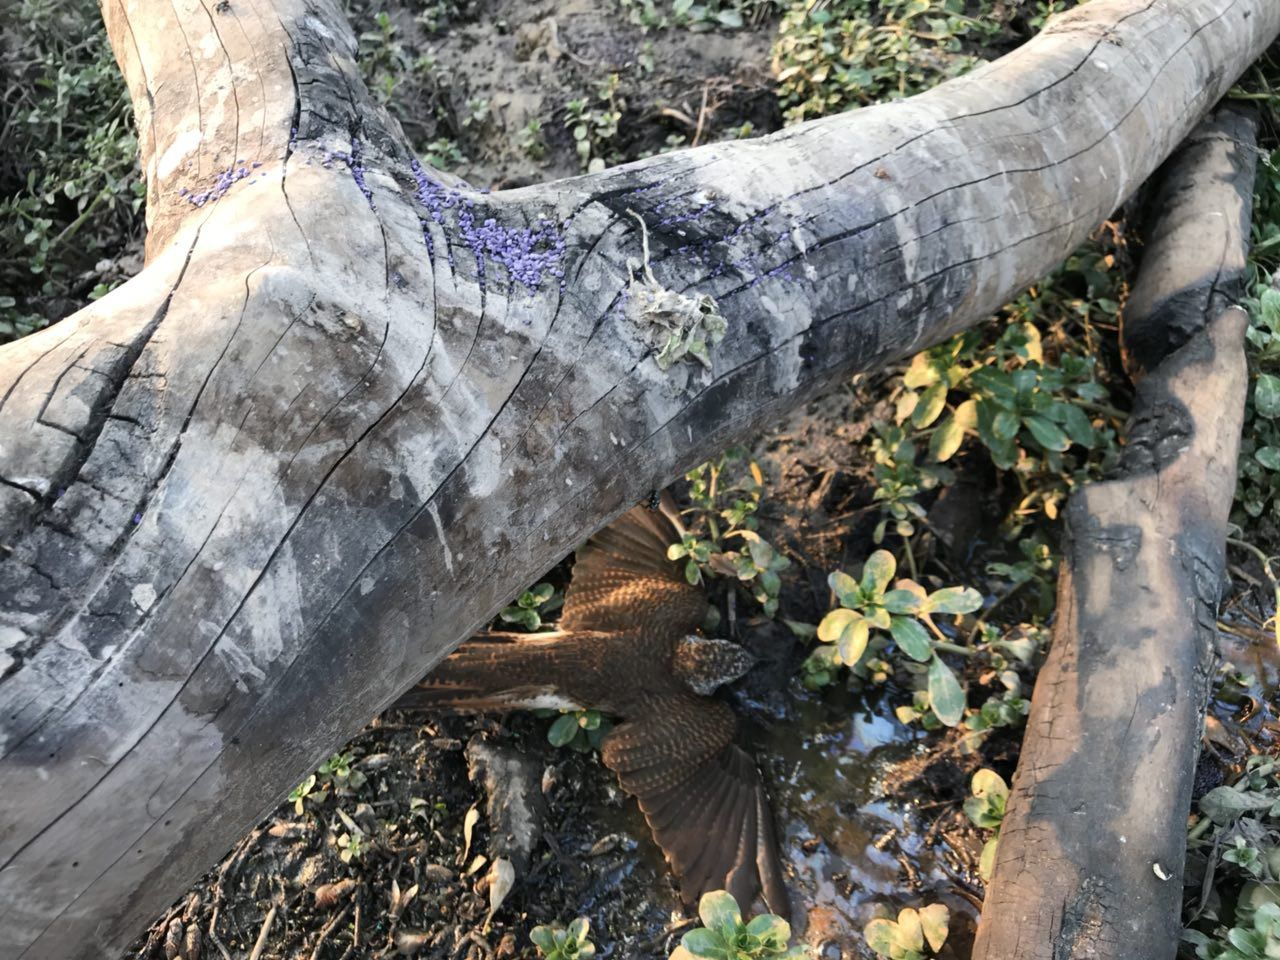 Figure 2: a poisoned waterhole with a dead plaintive cuckoo. The purple carbofuran pesticide is visible on the tree trunk.